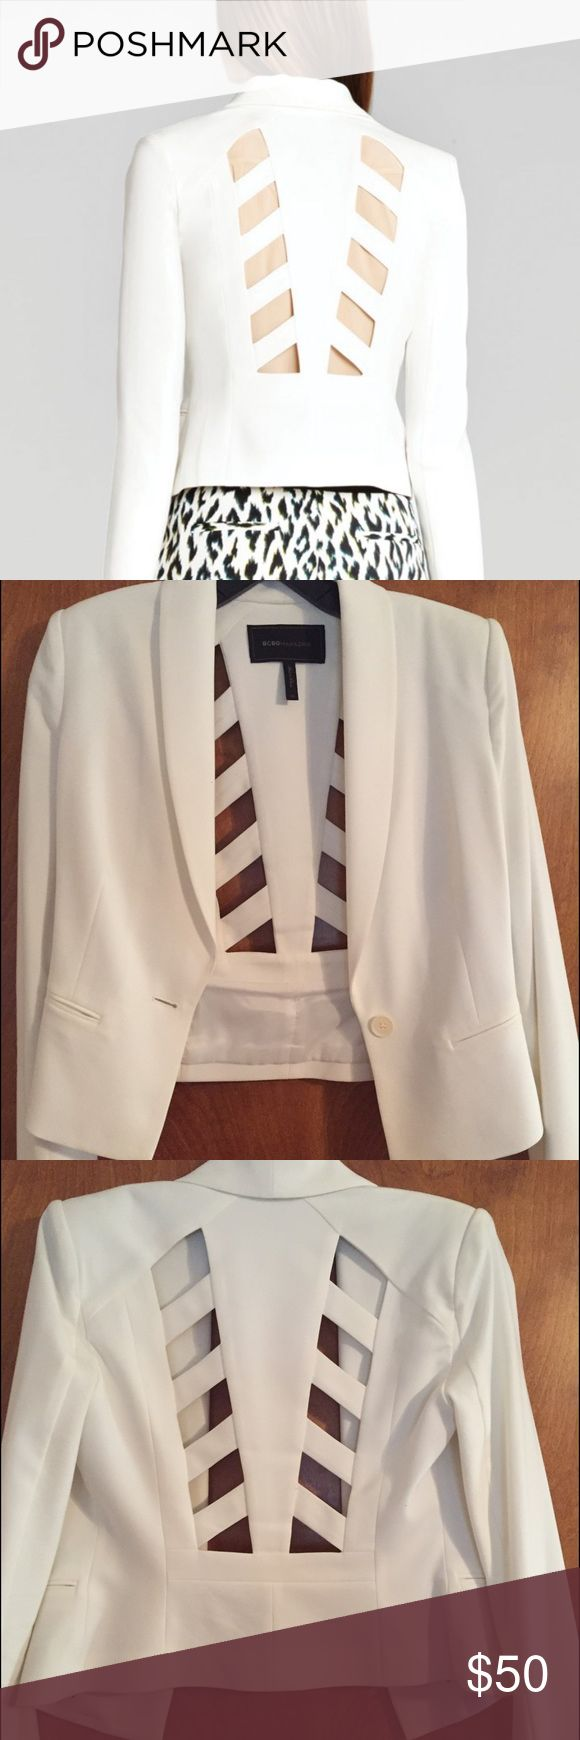 BCBGMaxAzria White Cut-out Back Blazer Lightly worn blazer with cut-outs on the back. Cropped fitting. No stains or discoloration. BCBGMaxAzria Jackets & Coats Blazers